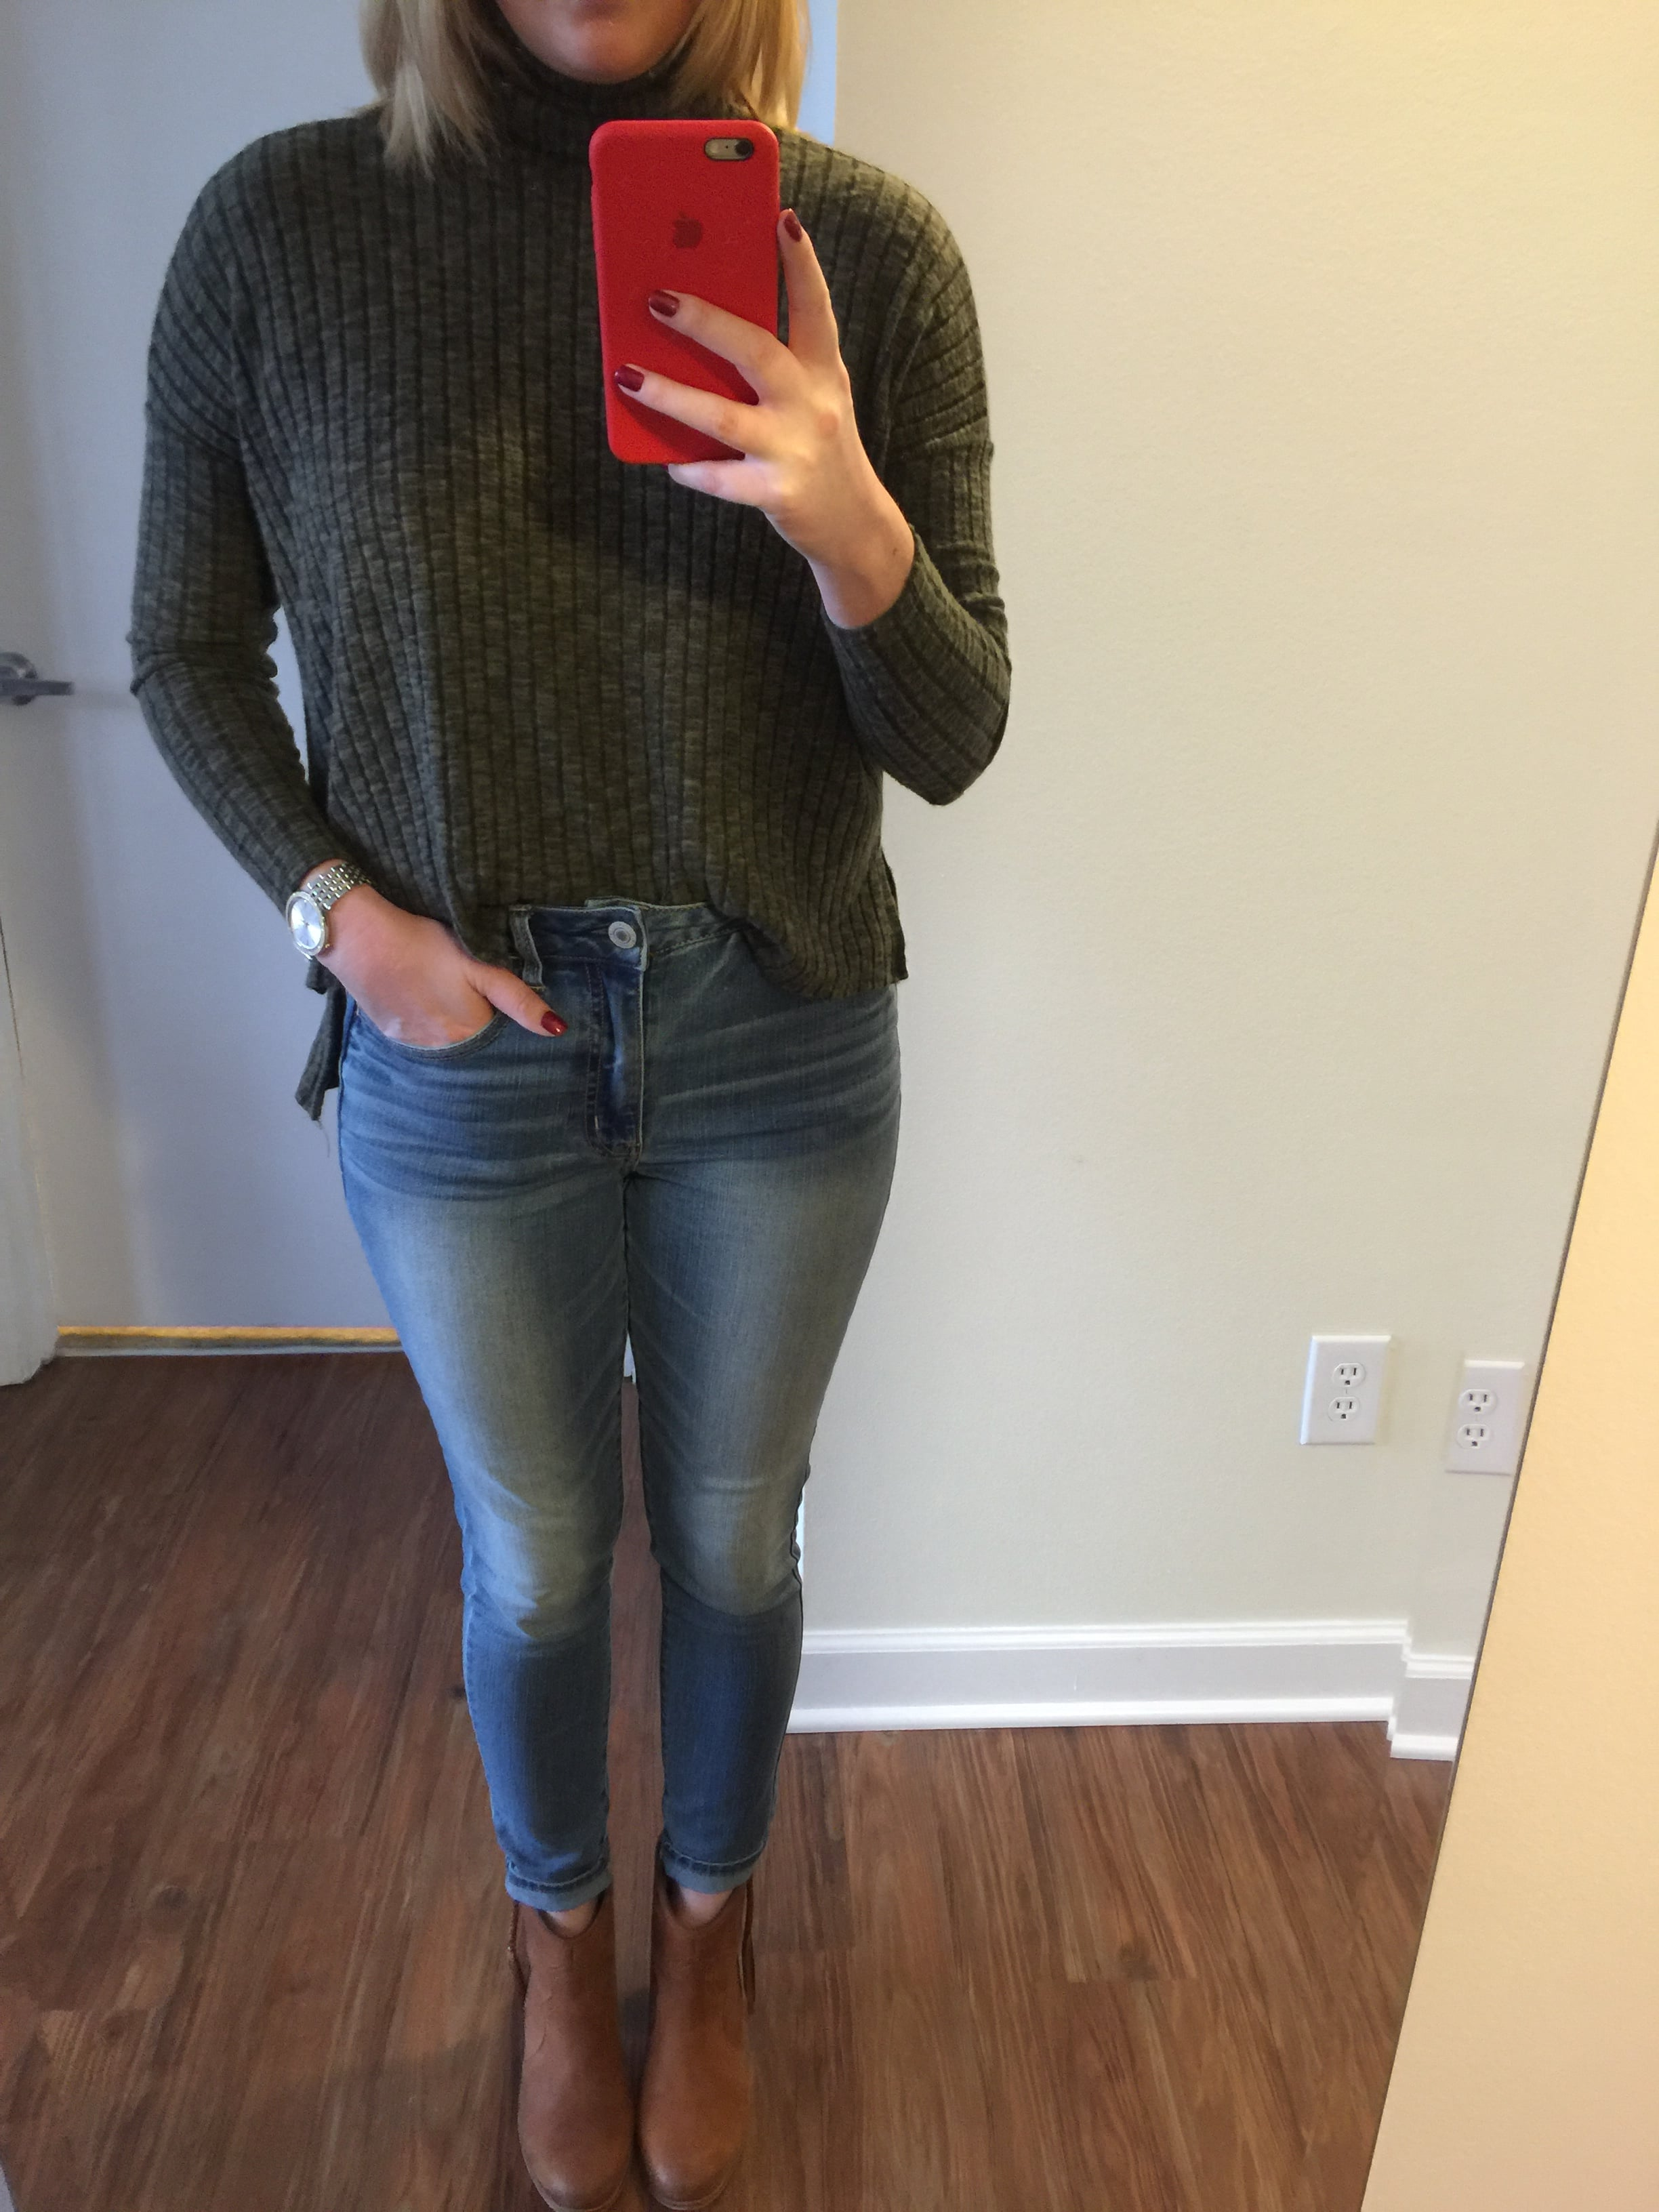 Top: American Eagle, Jeans: American Eagle,  Hi-Rise Jegging , Watch: Nordstrom,  Michael Kors 'Darci' Round Bracelet Watch, 39mm , Boots: Aldo